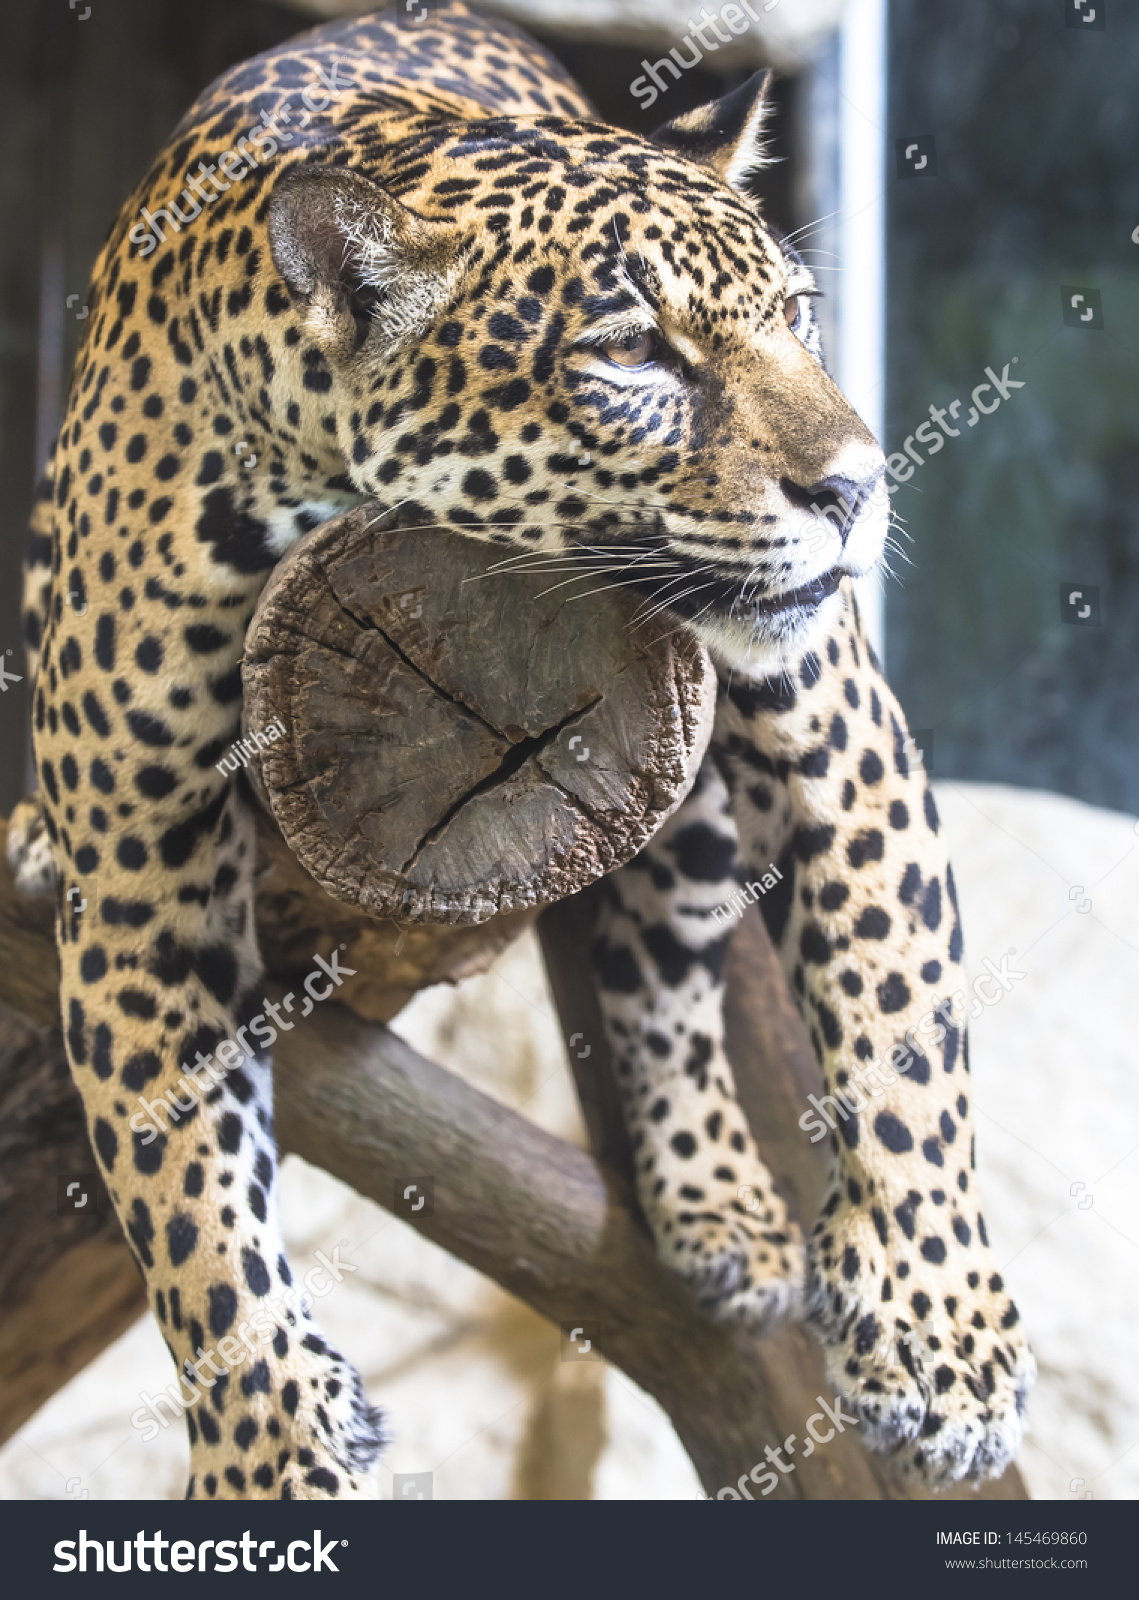 leopard and jaguar hybrid - photo #3